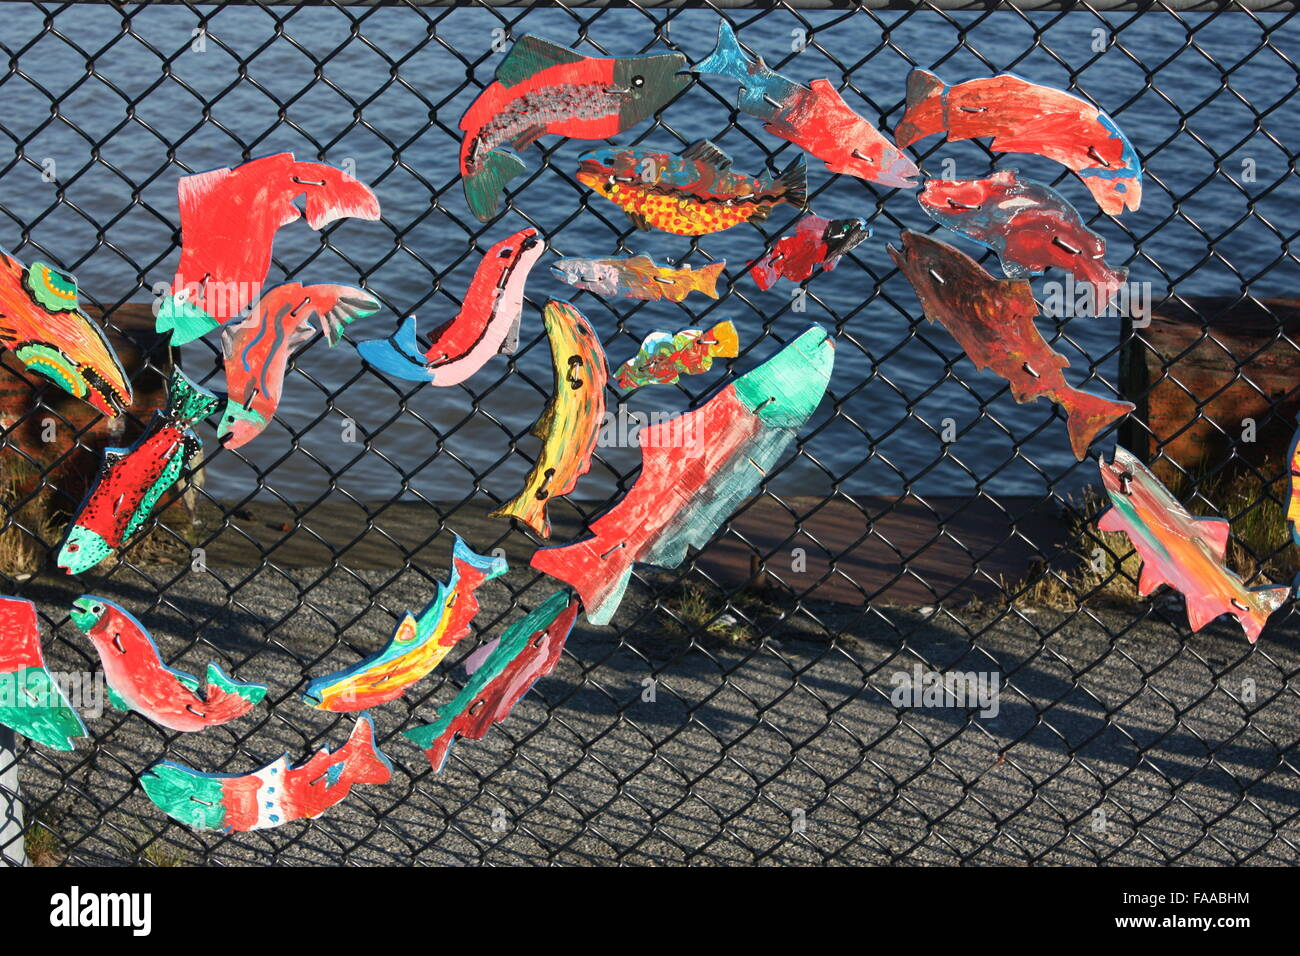 Fish decoration on a fence by the Fraser River in New Westminster, British Columbia, Canada - Stock Image